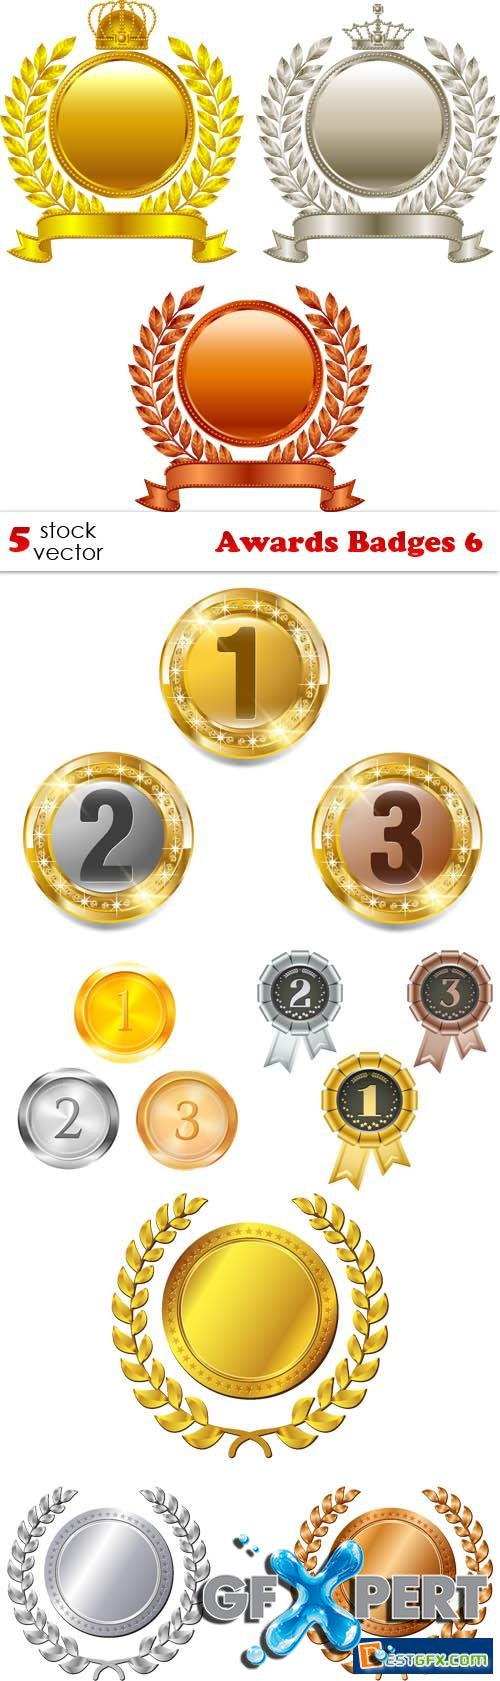 Vectors - Awards Badges 6